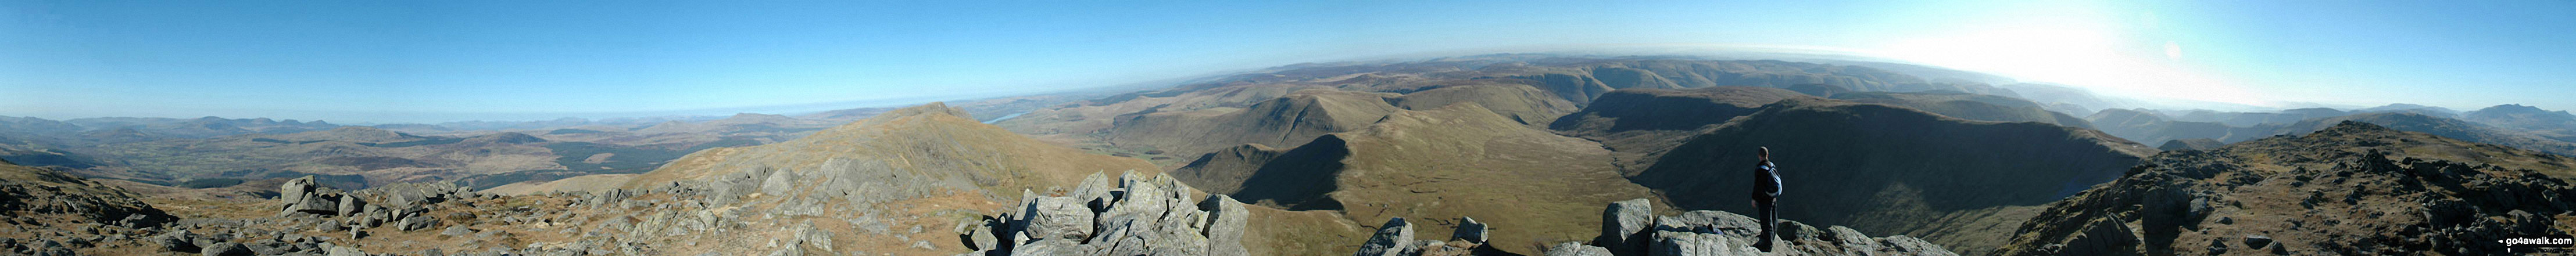 360 degree panorama from the summit of Aran Fawddwy